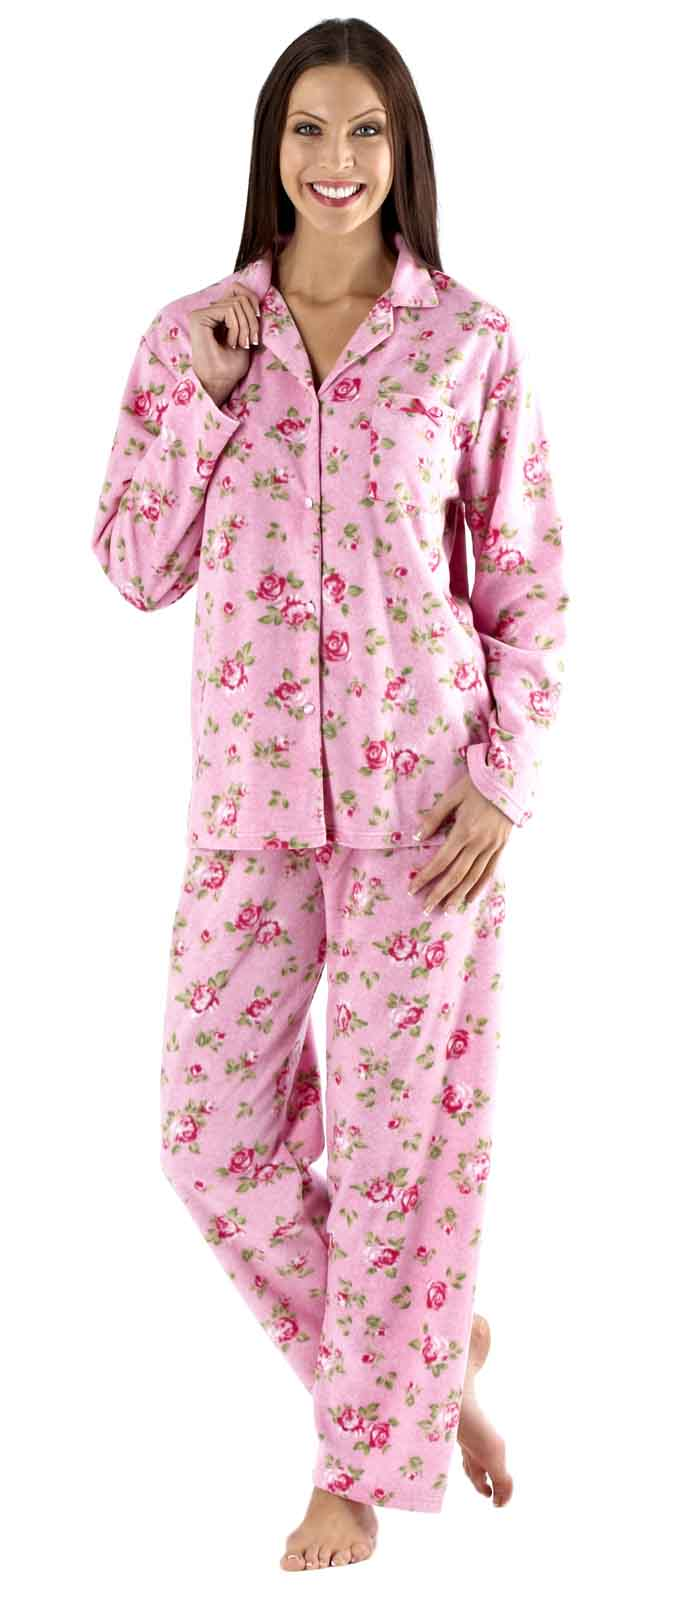 Luxury Womens Fleece Pyjamas Full Length Warm Winter Traditional Nightwear Size